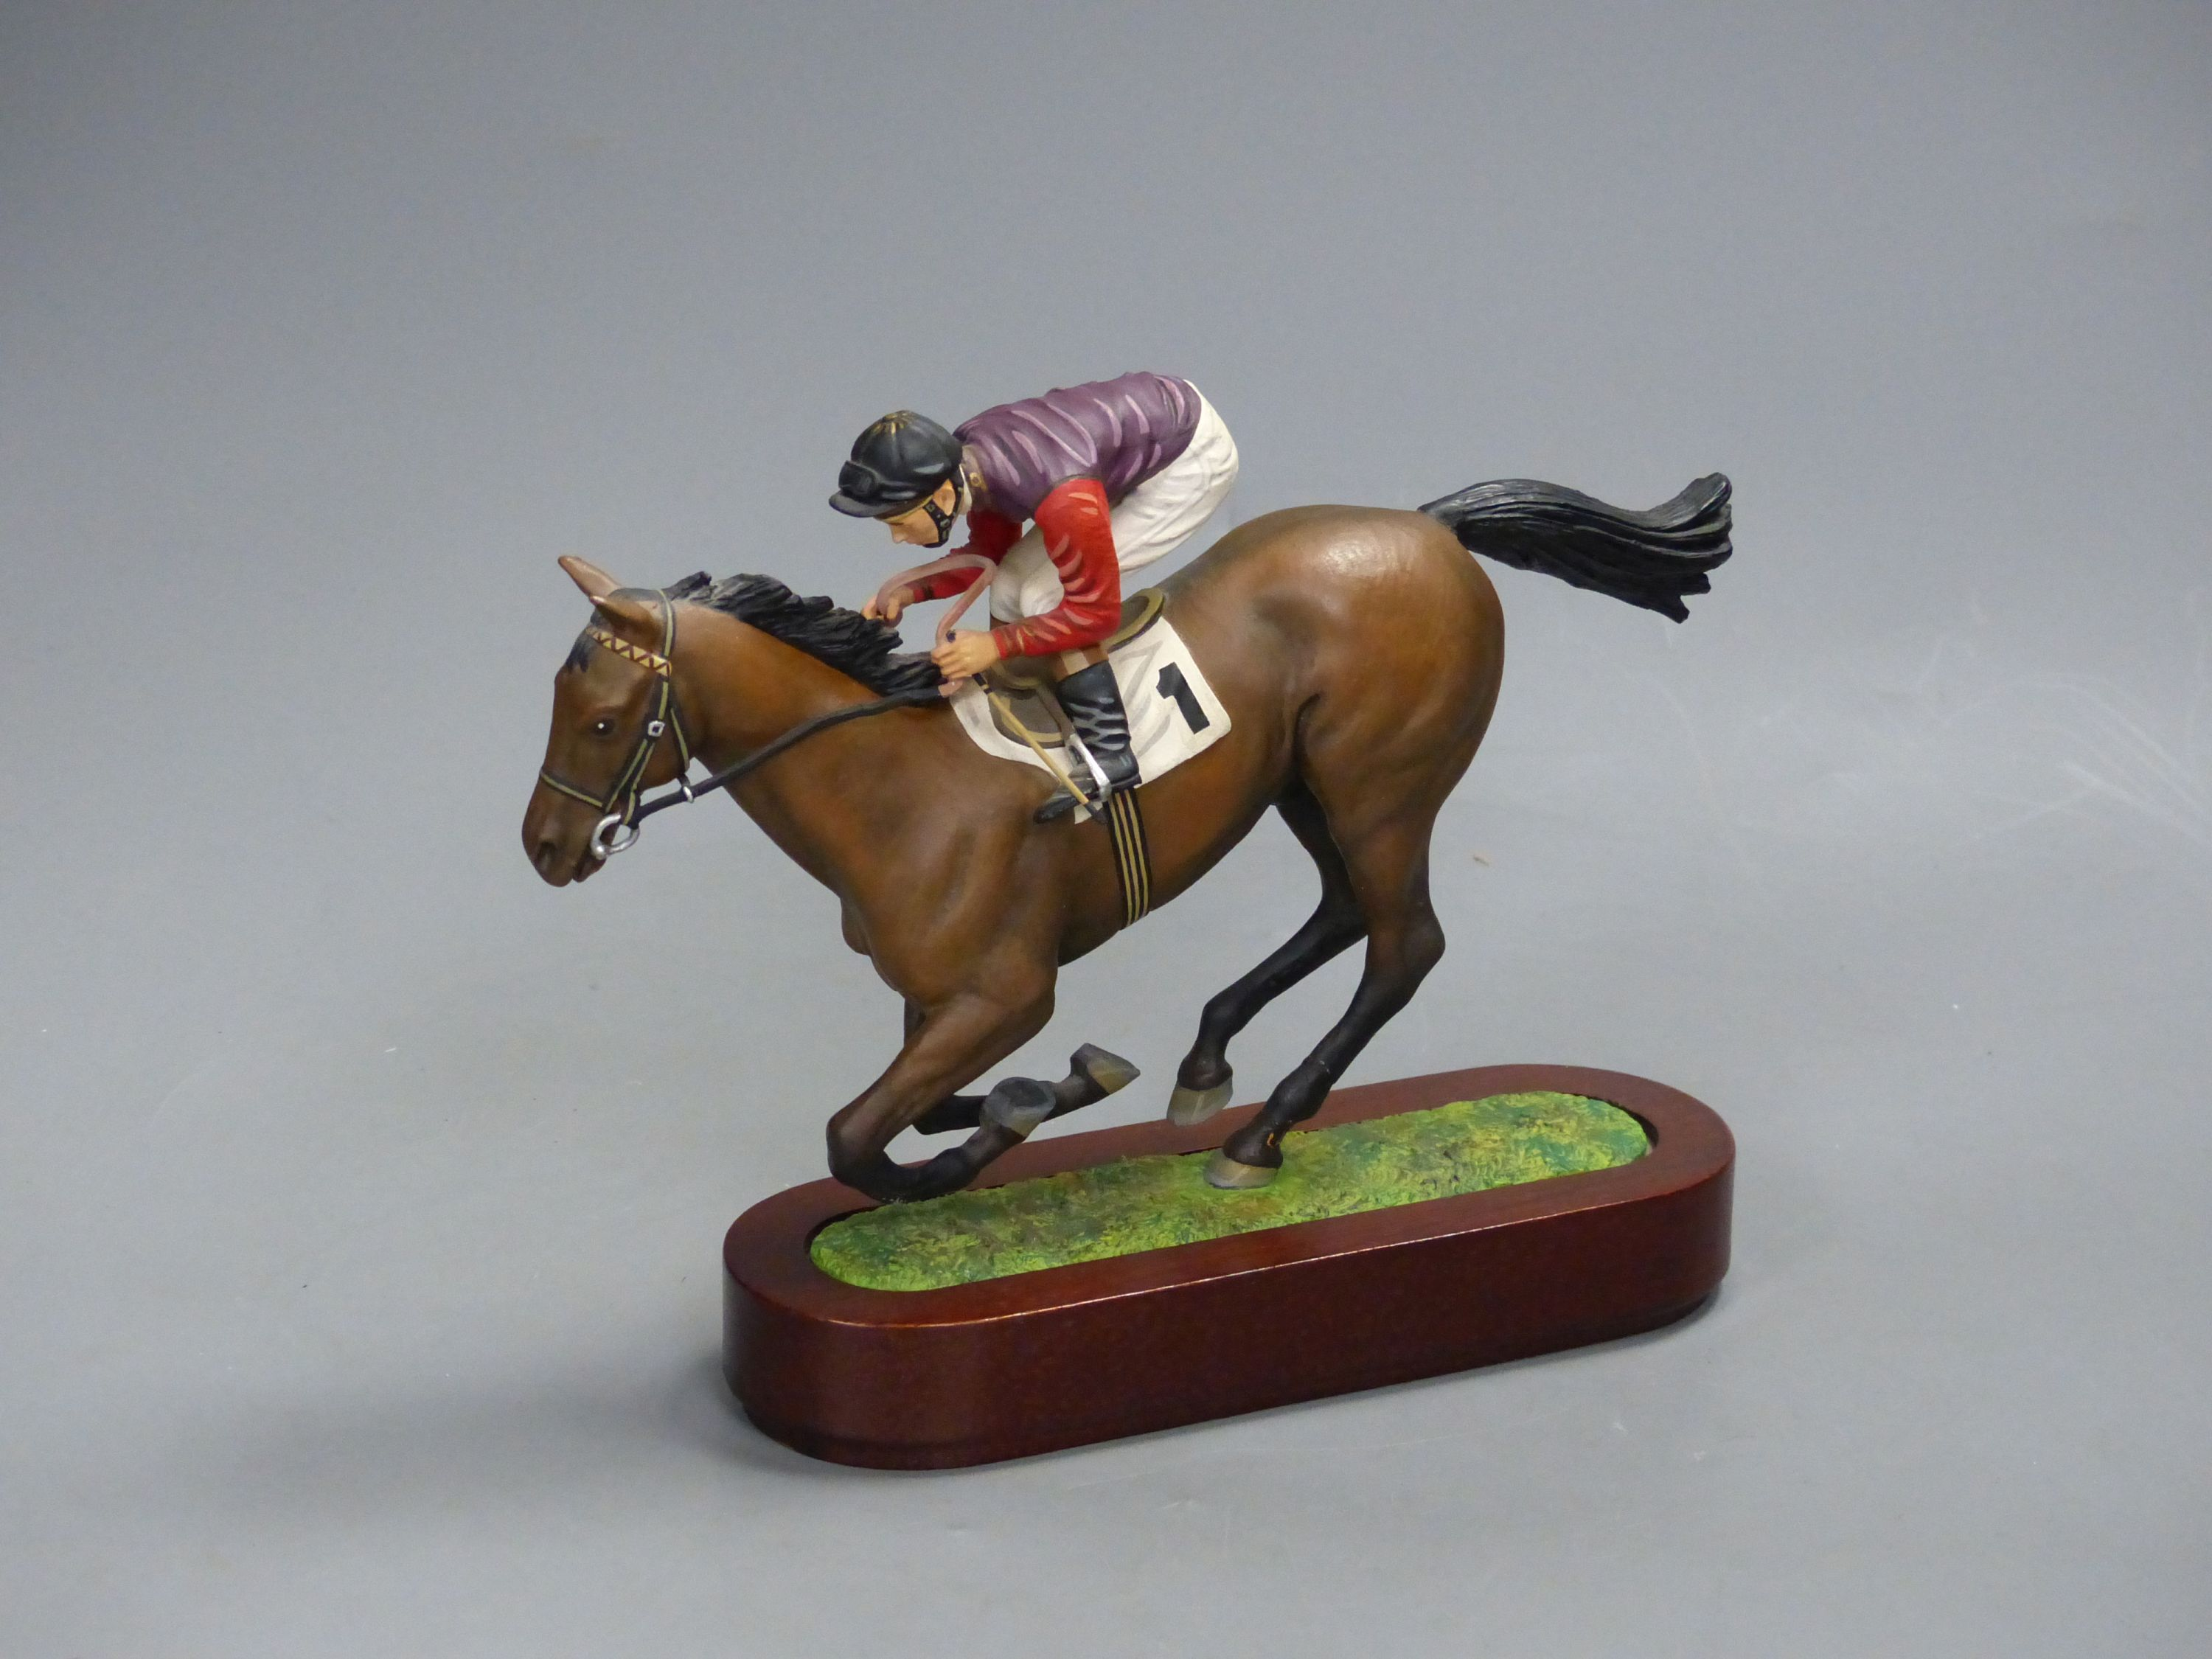 A Cameron Sculptures cold-painted bronze model of a racehorse with jockey up, height 16.5cm